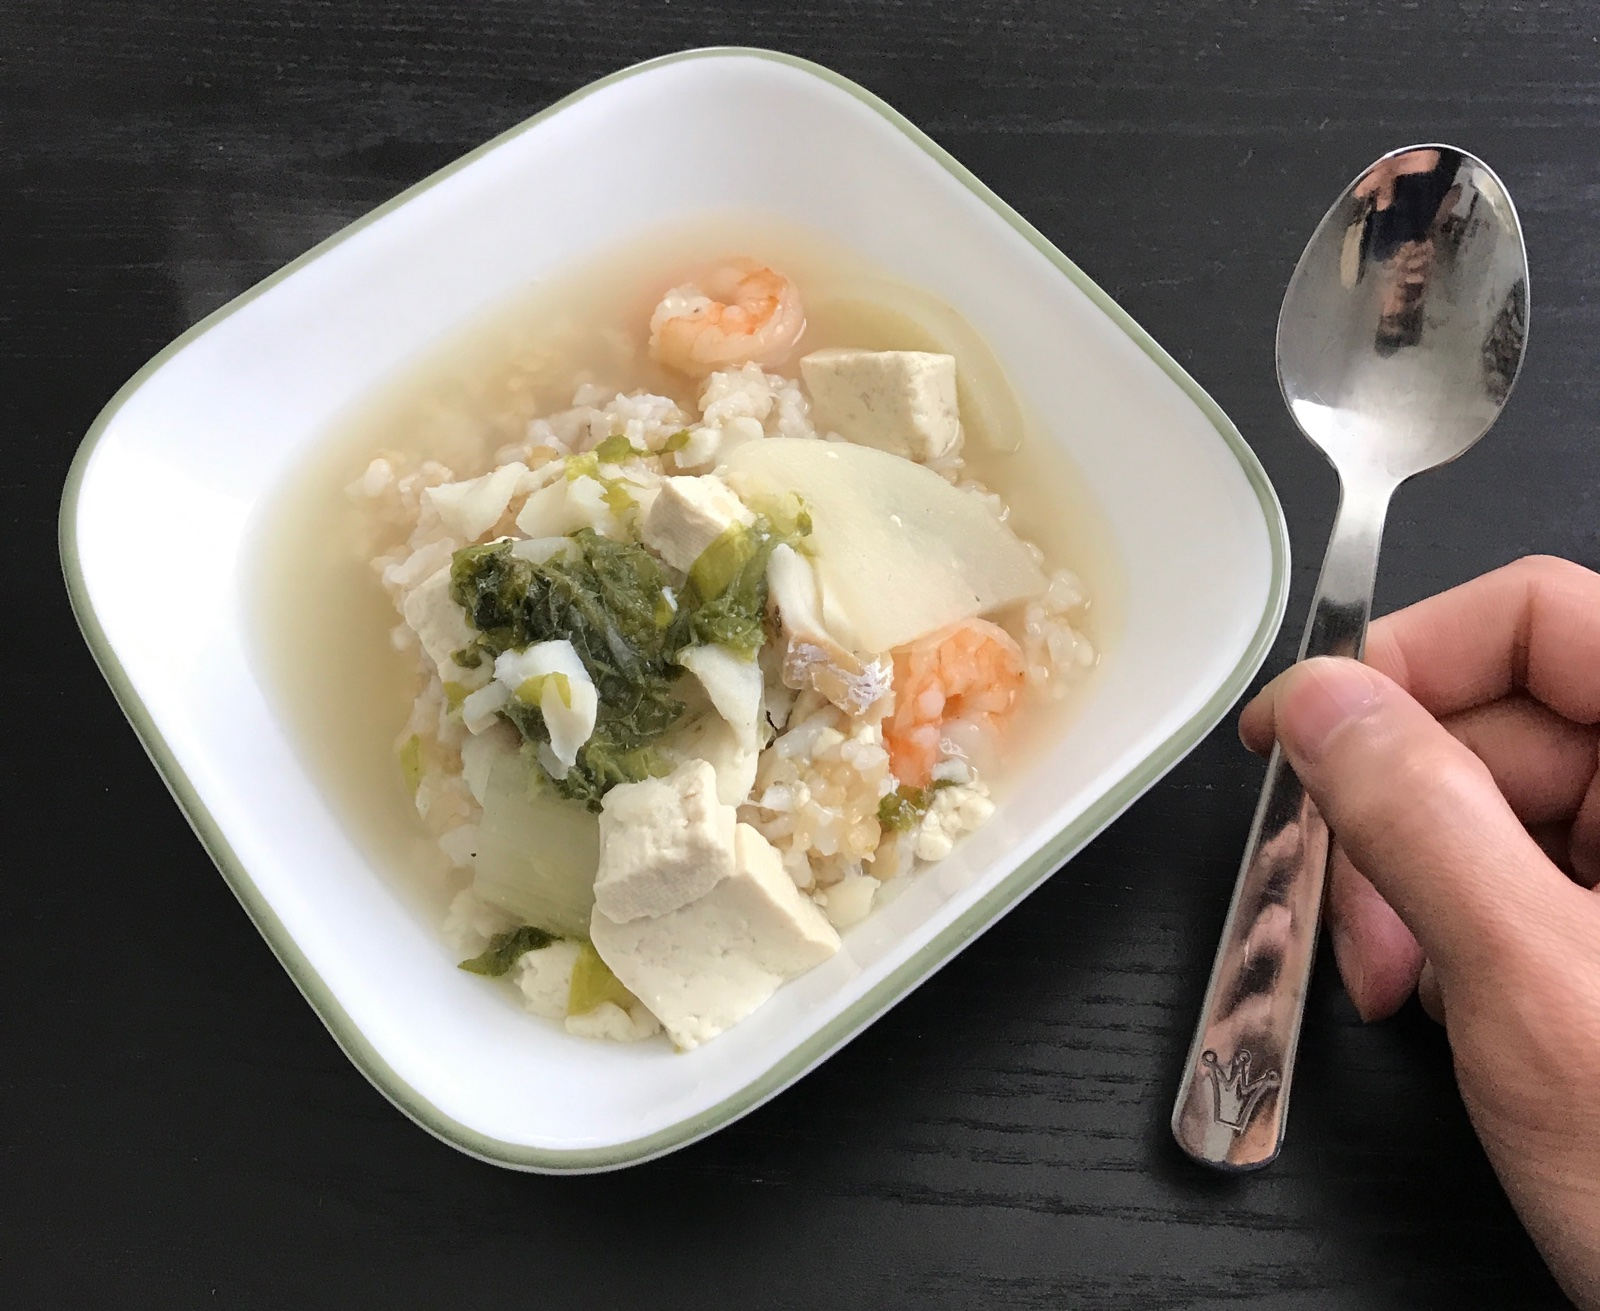 Bowl of soup with a kid's spoon